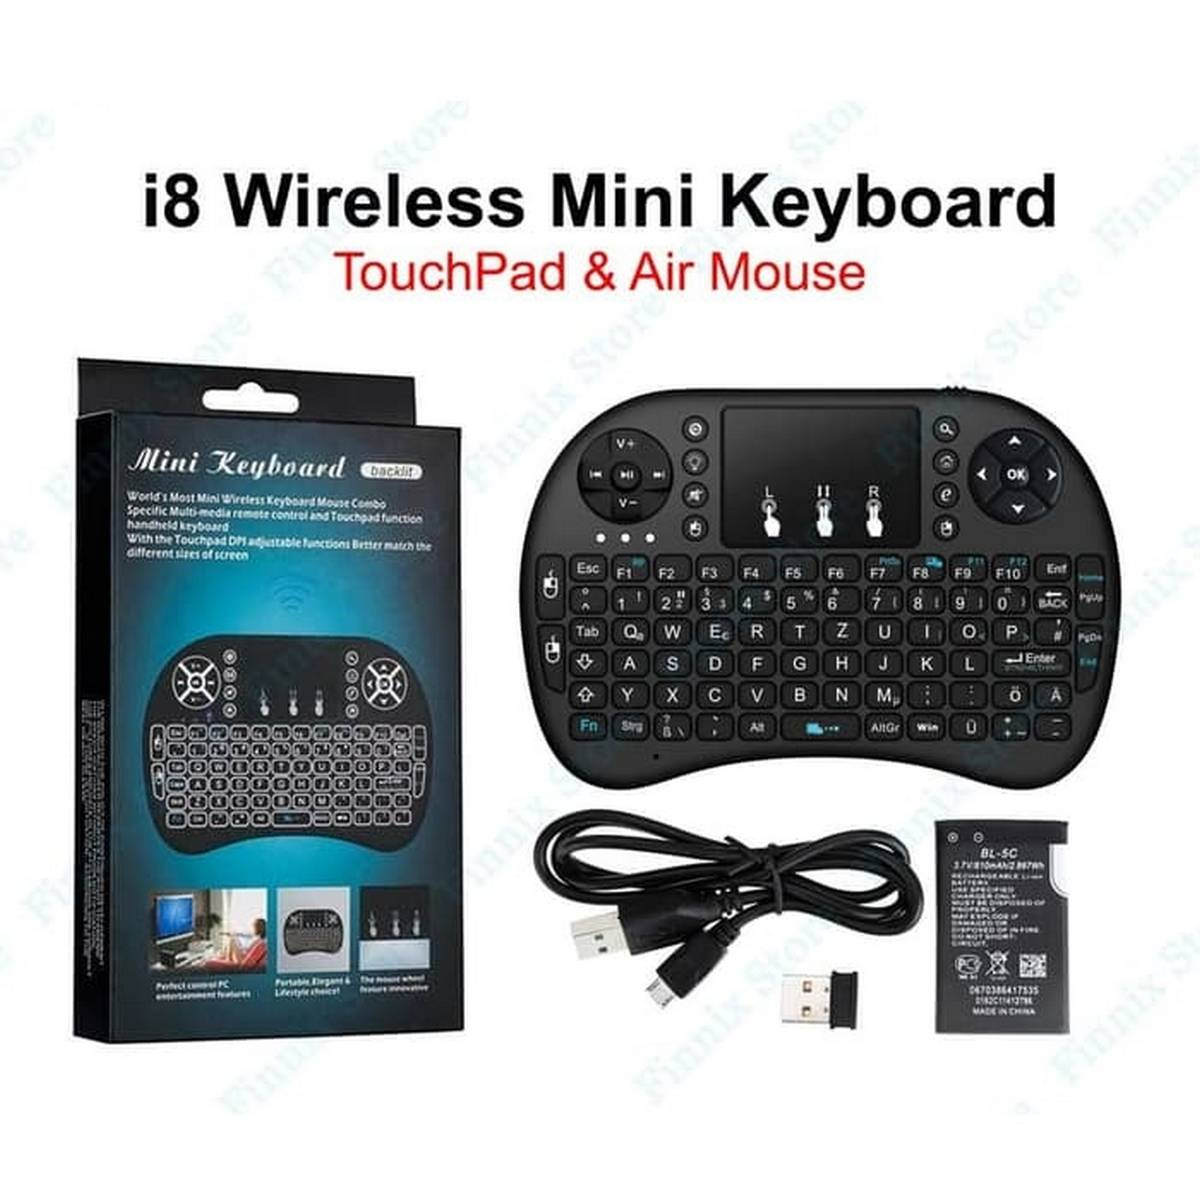 RF500 2.4GHz Mini Wireless QWERTY Keyboard RF-500 with Backlight For Desktop / Laptop Dual Mouse USB Receiver Plug and Play 4 Languages - Black